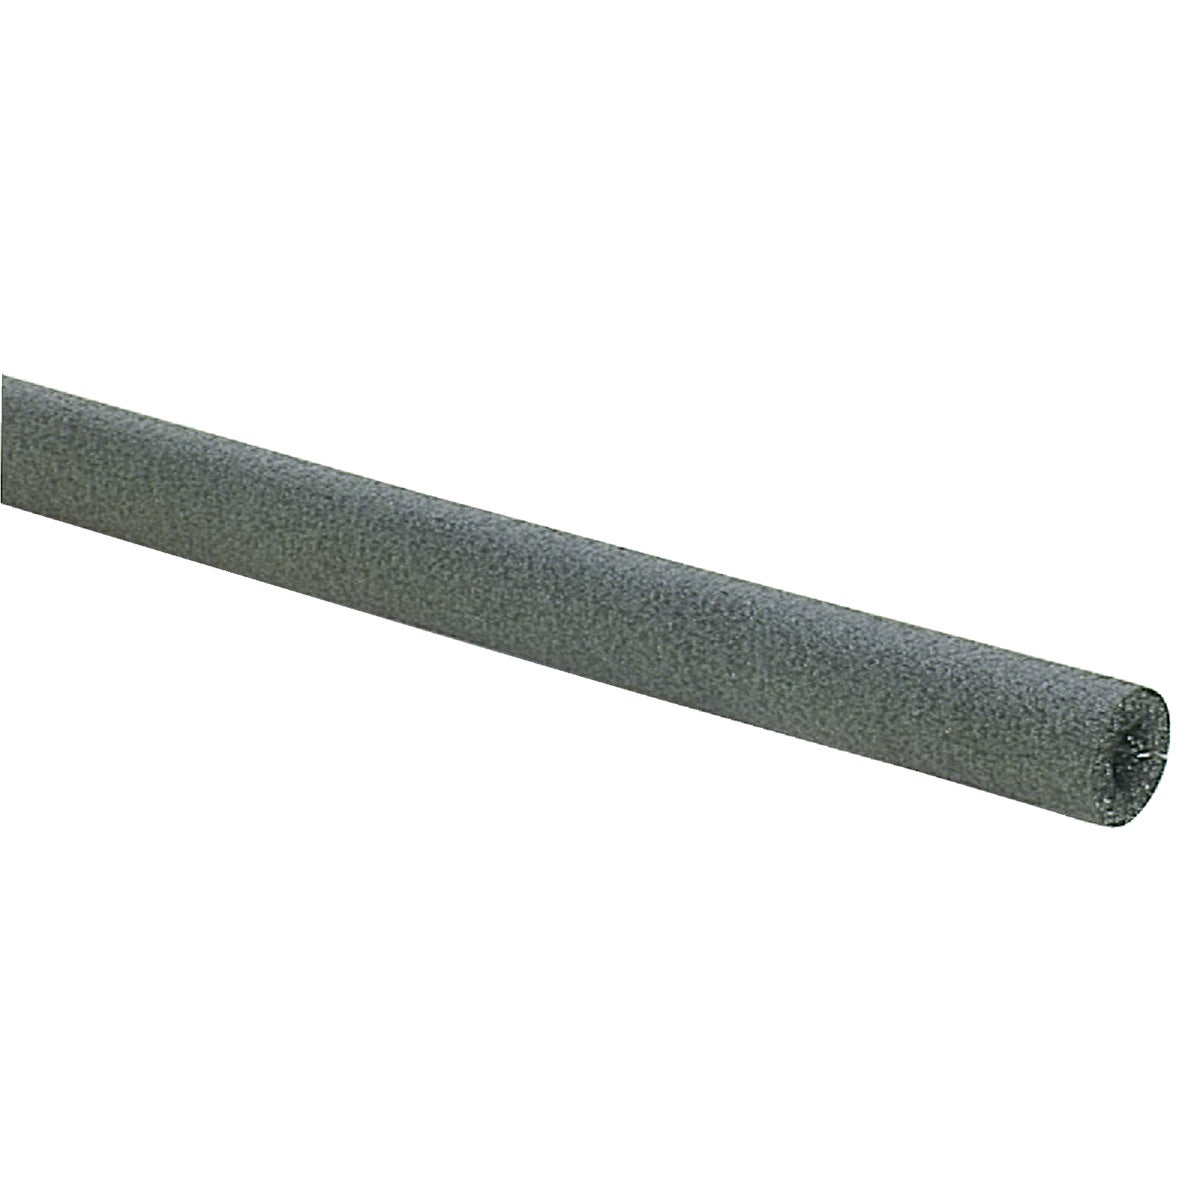 "1/2"" PIPE INSULATION - PR38058TW by I T P Ltd"